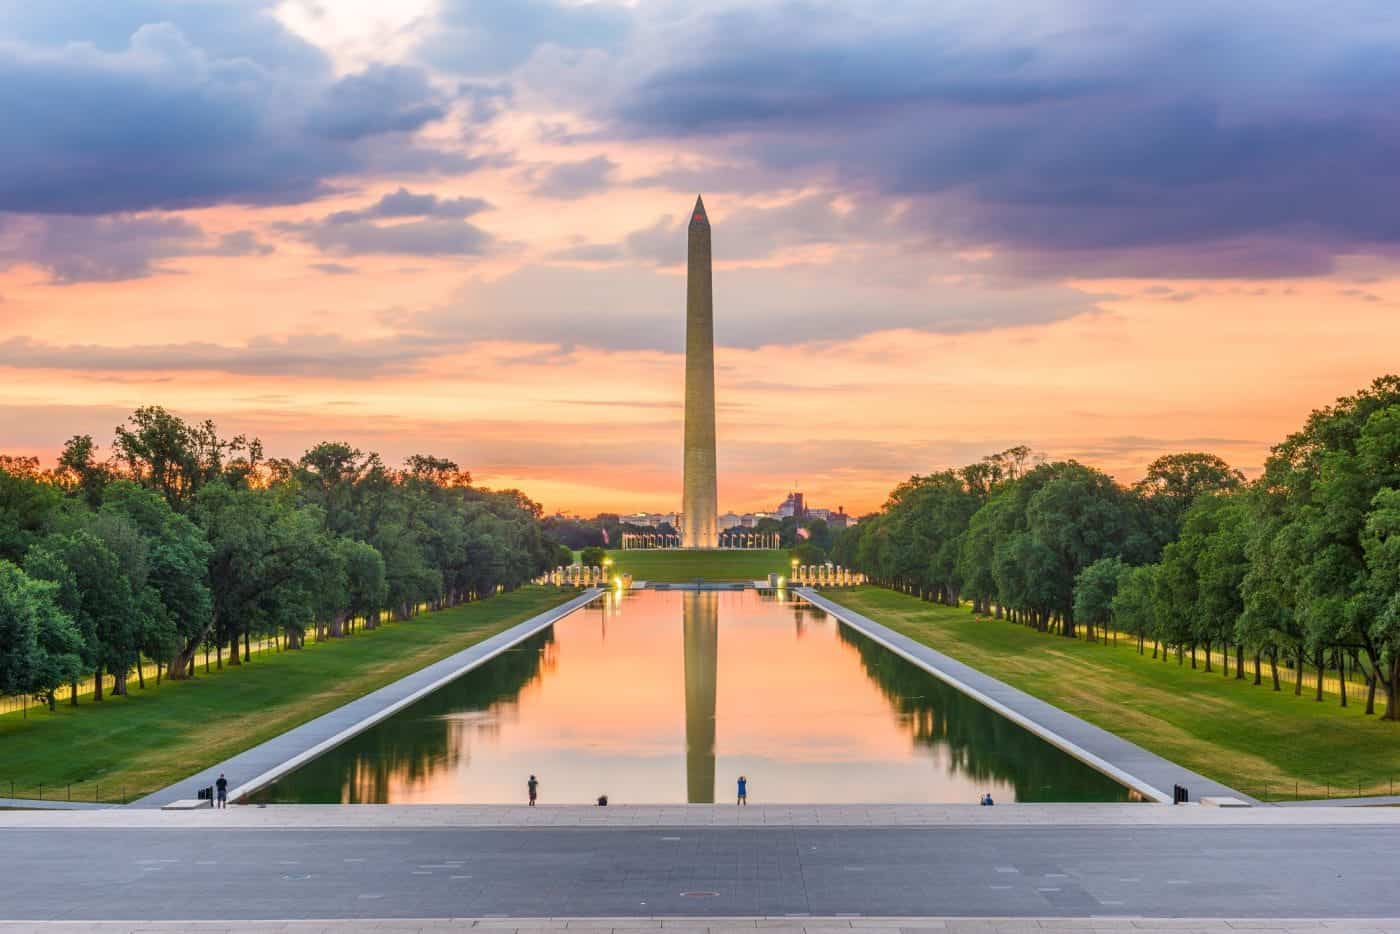 Washington DC. Source: TripAdvisor